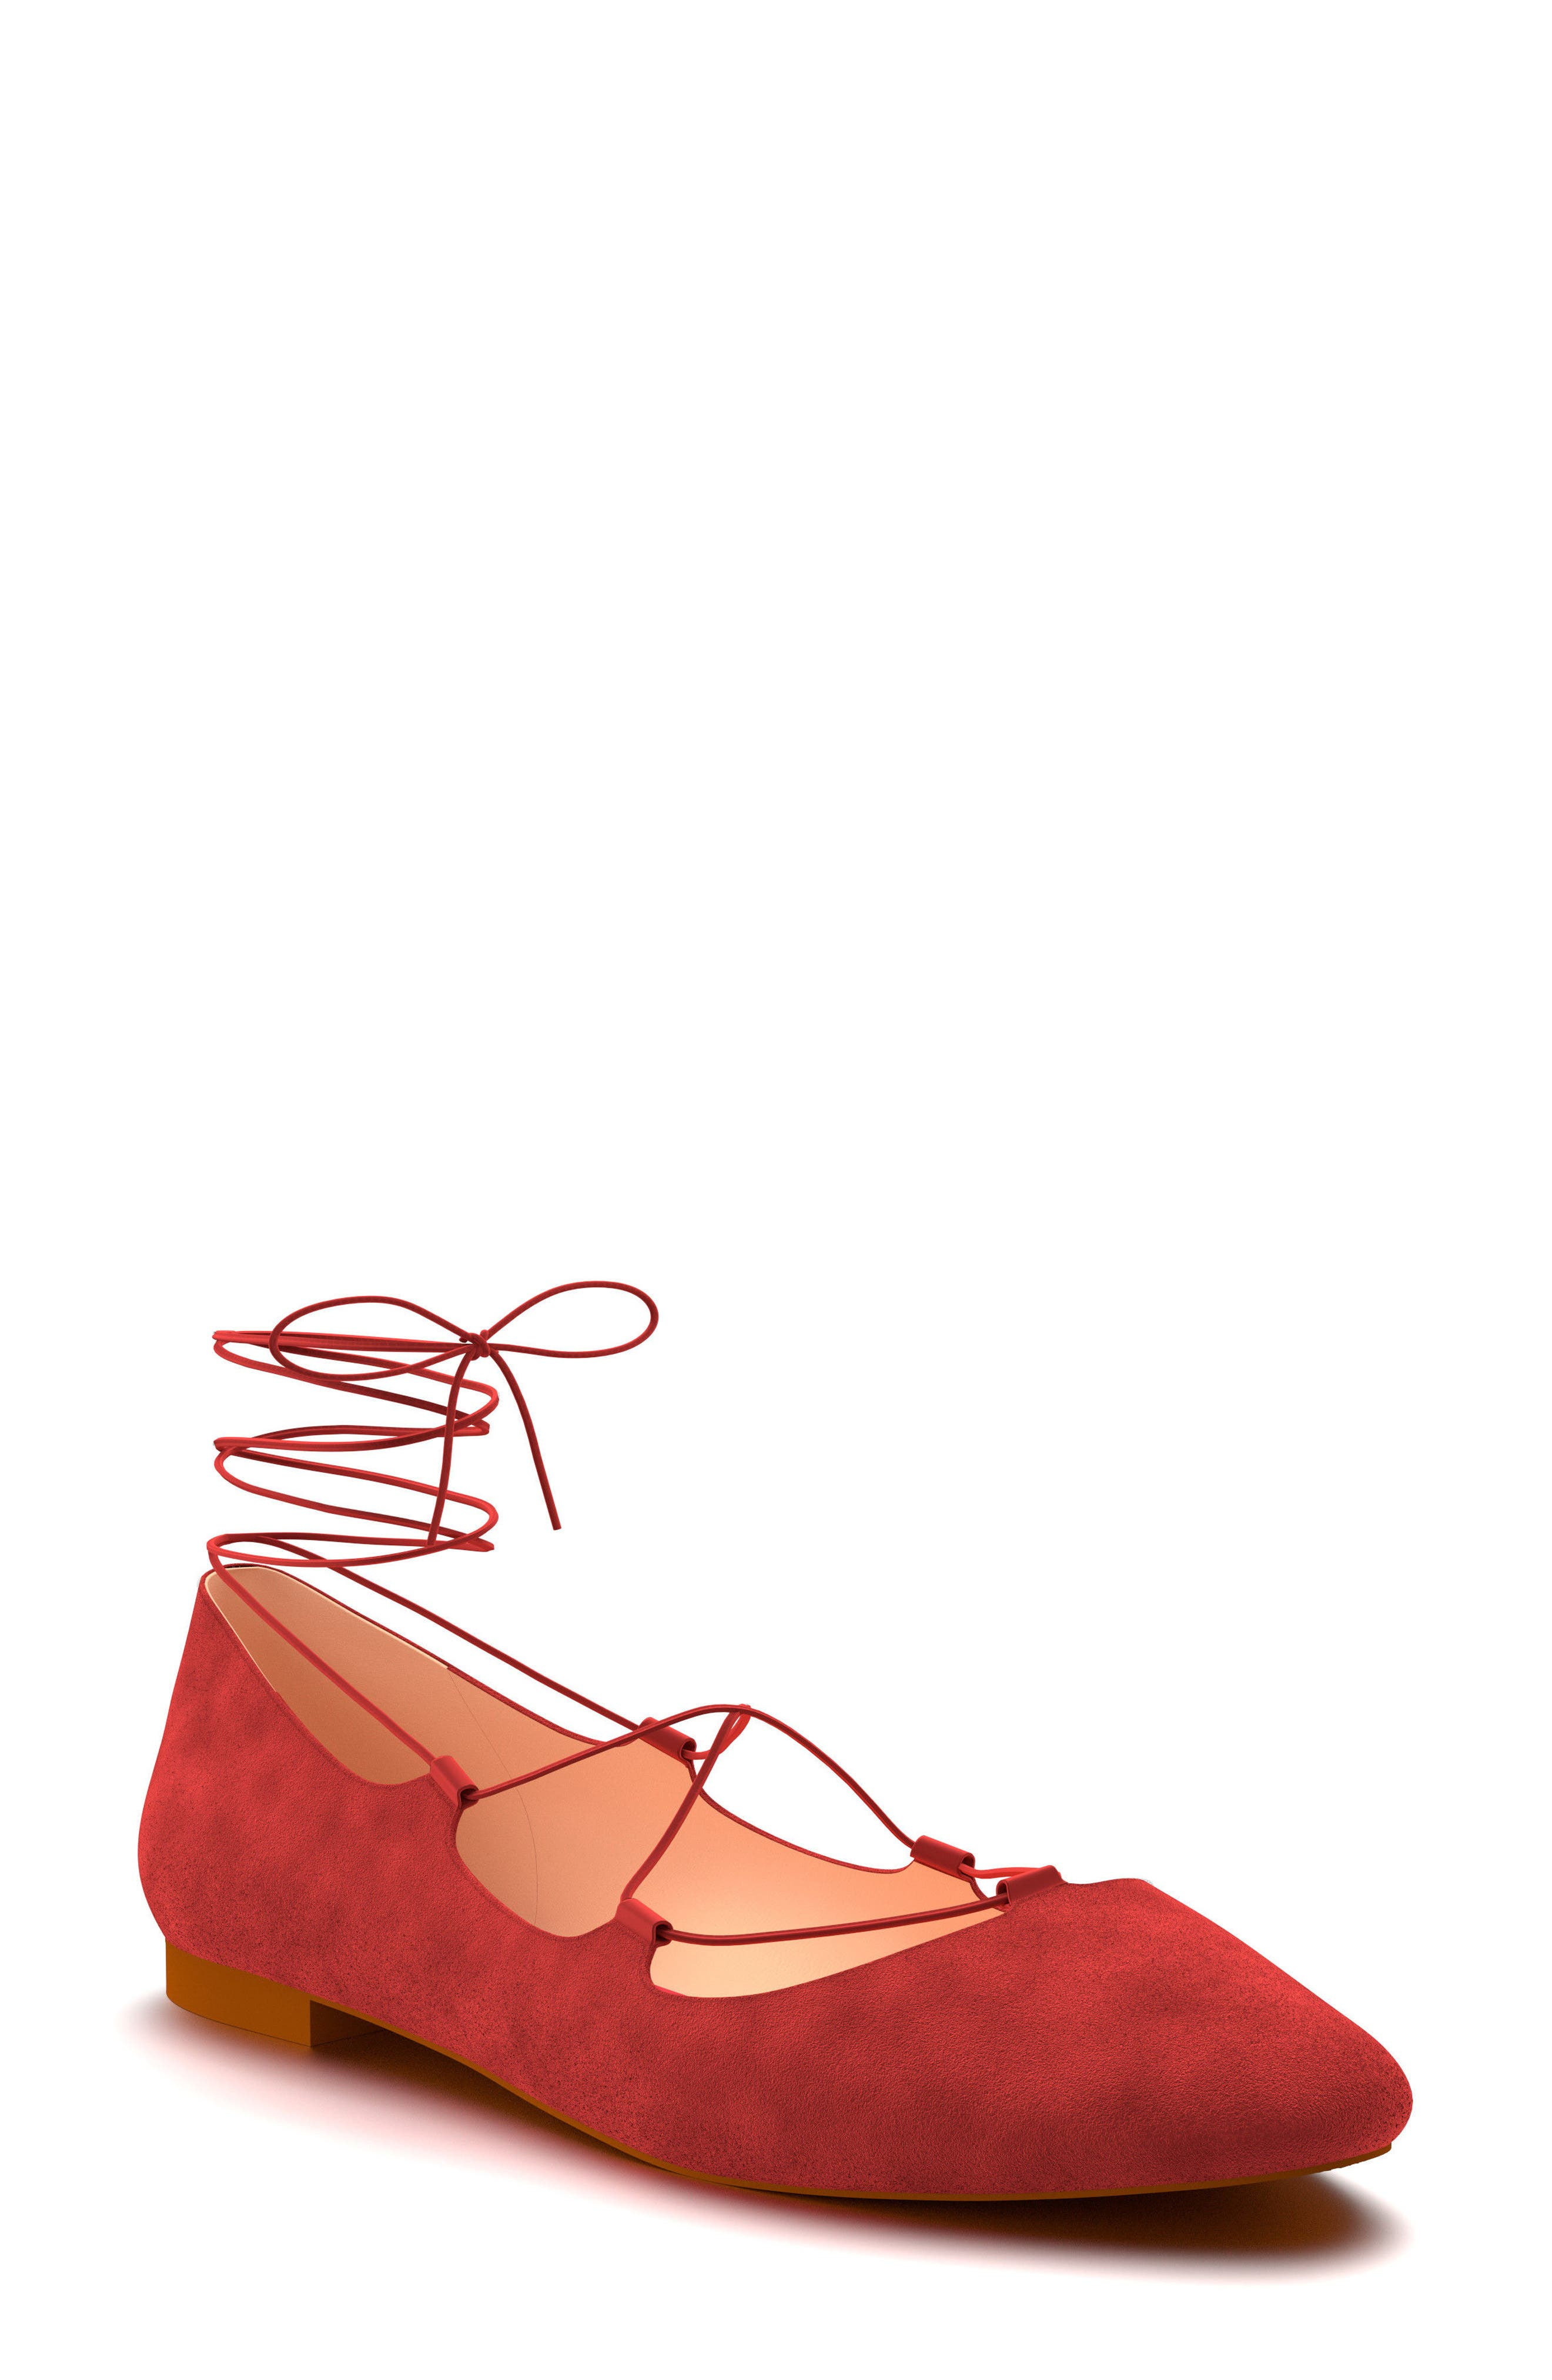 Ghillie Ballet Flat,                             Main thumbnail 1, color,                             Dark Red Suede